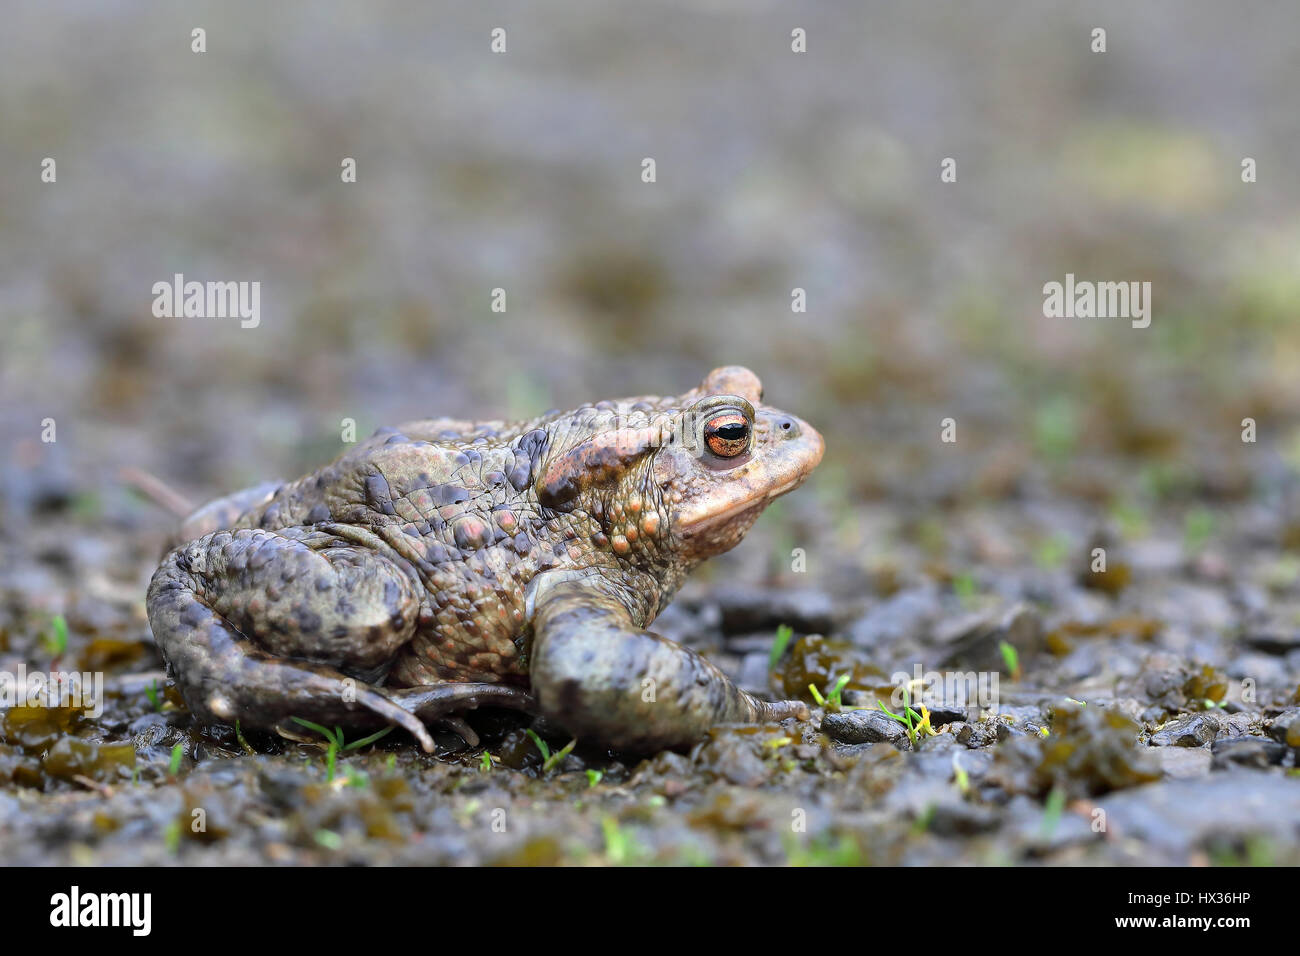 Common toad (Bufo bufo) sitting on damp ground, Malscheid Nature Reserve, Siegerland, North Rhine-Westphalia, Germany - Stock Image